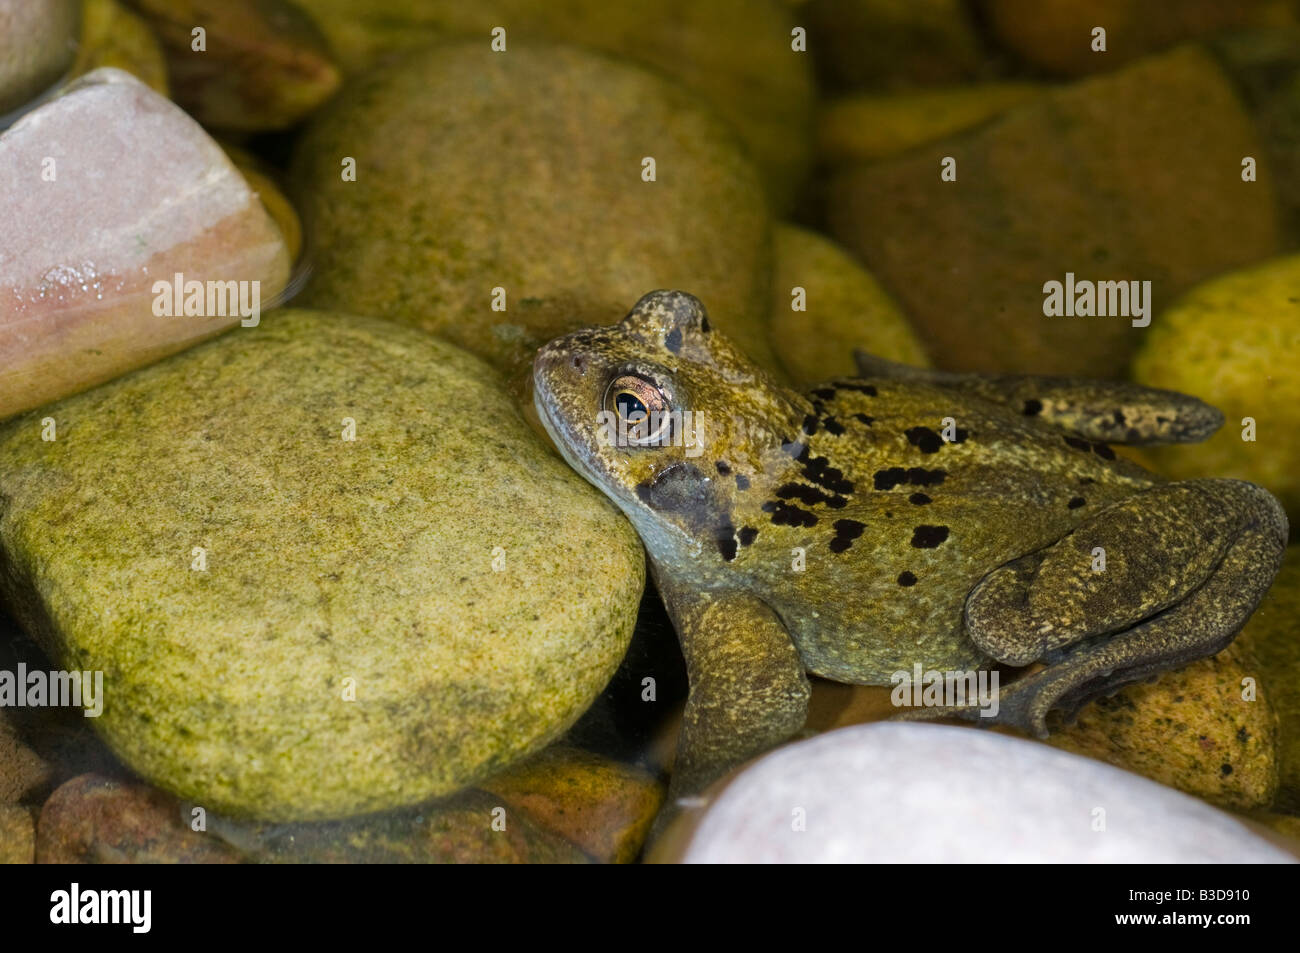 A female common frog Rana temporaria in a freshwater wildlife pond. - Stock Image